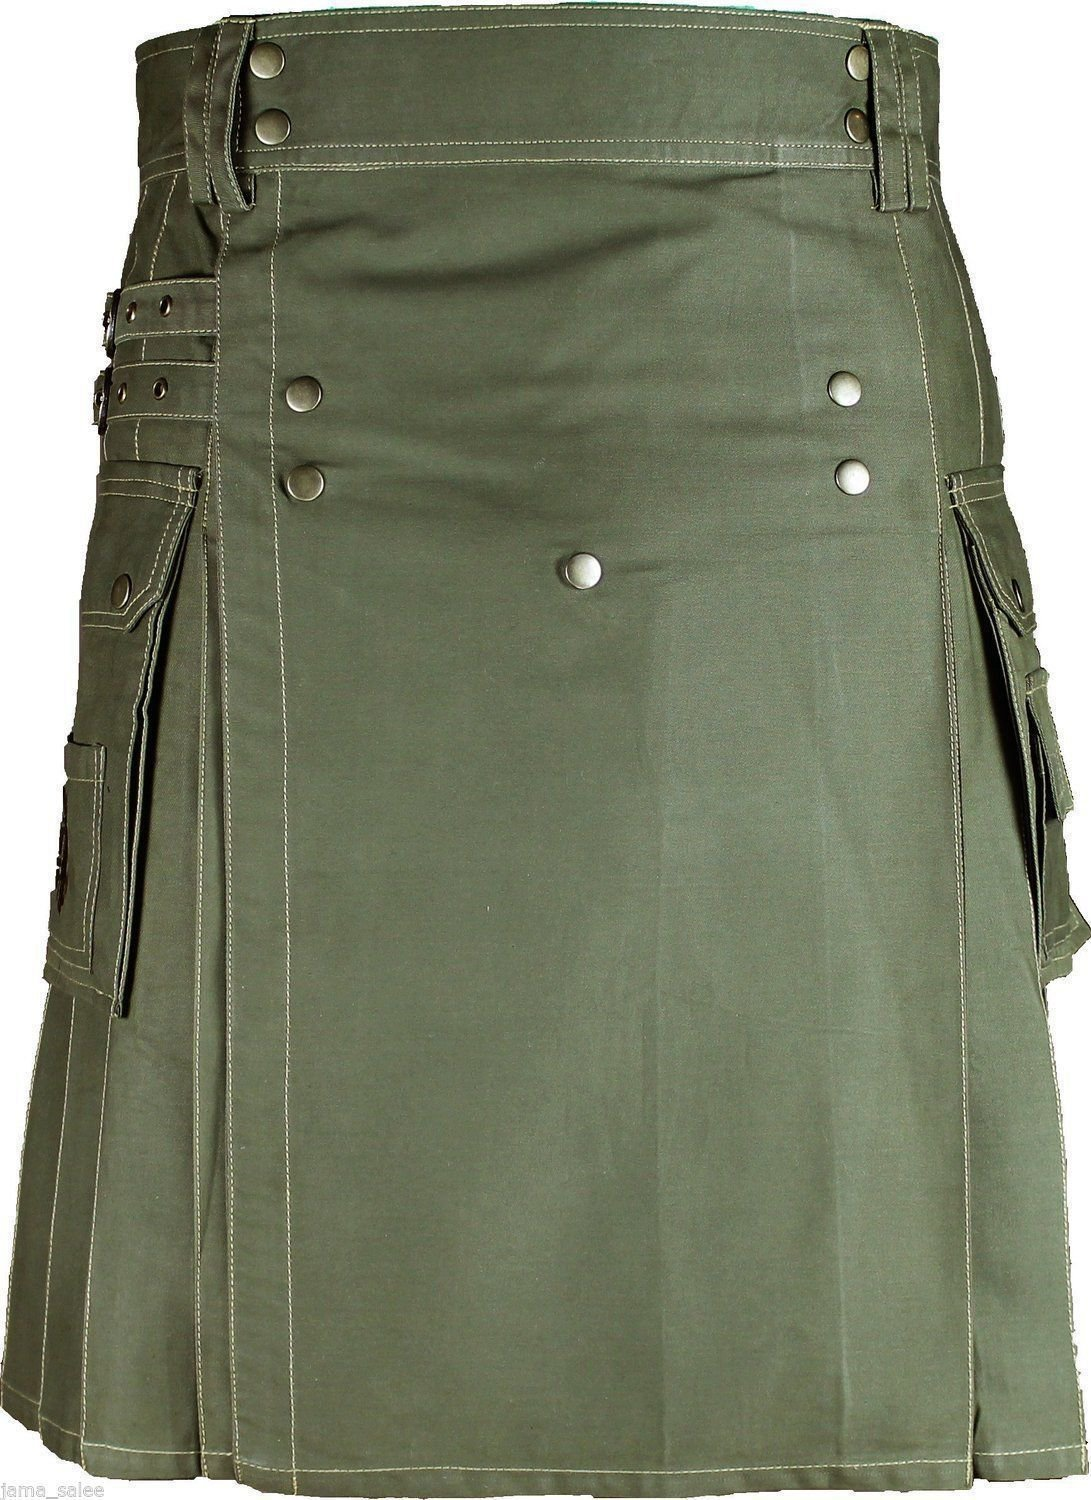 Size 34 Handmade Modern Utility Olive Green Cotton Kilt With Big Cargo Pockets Brass Materials